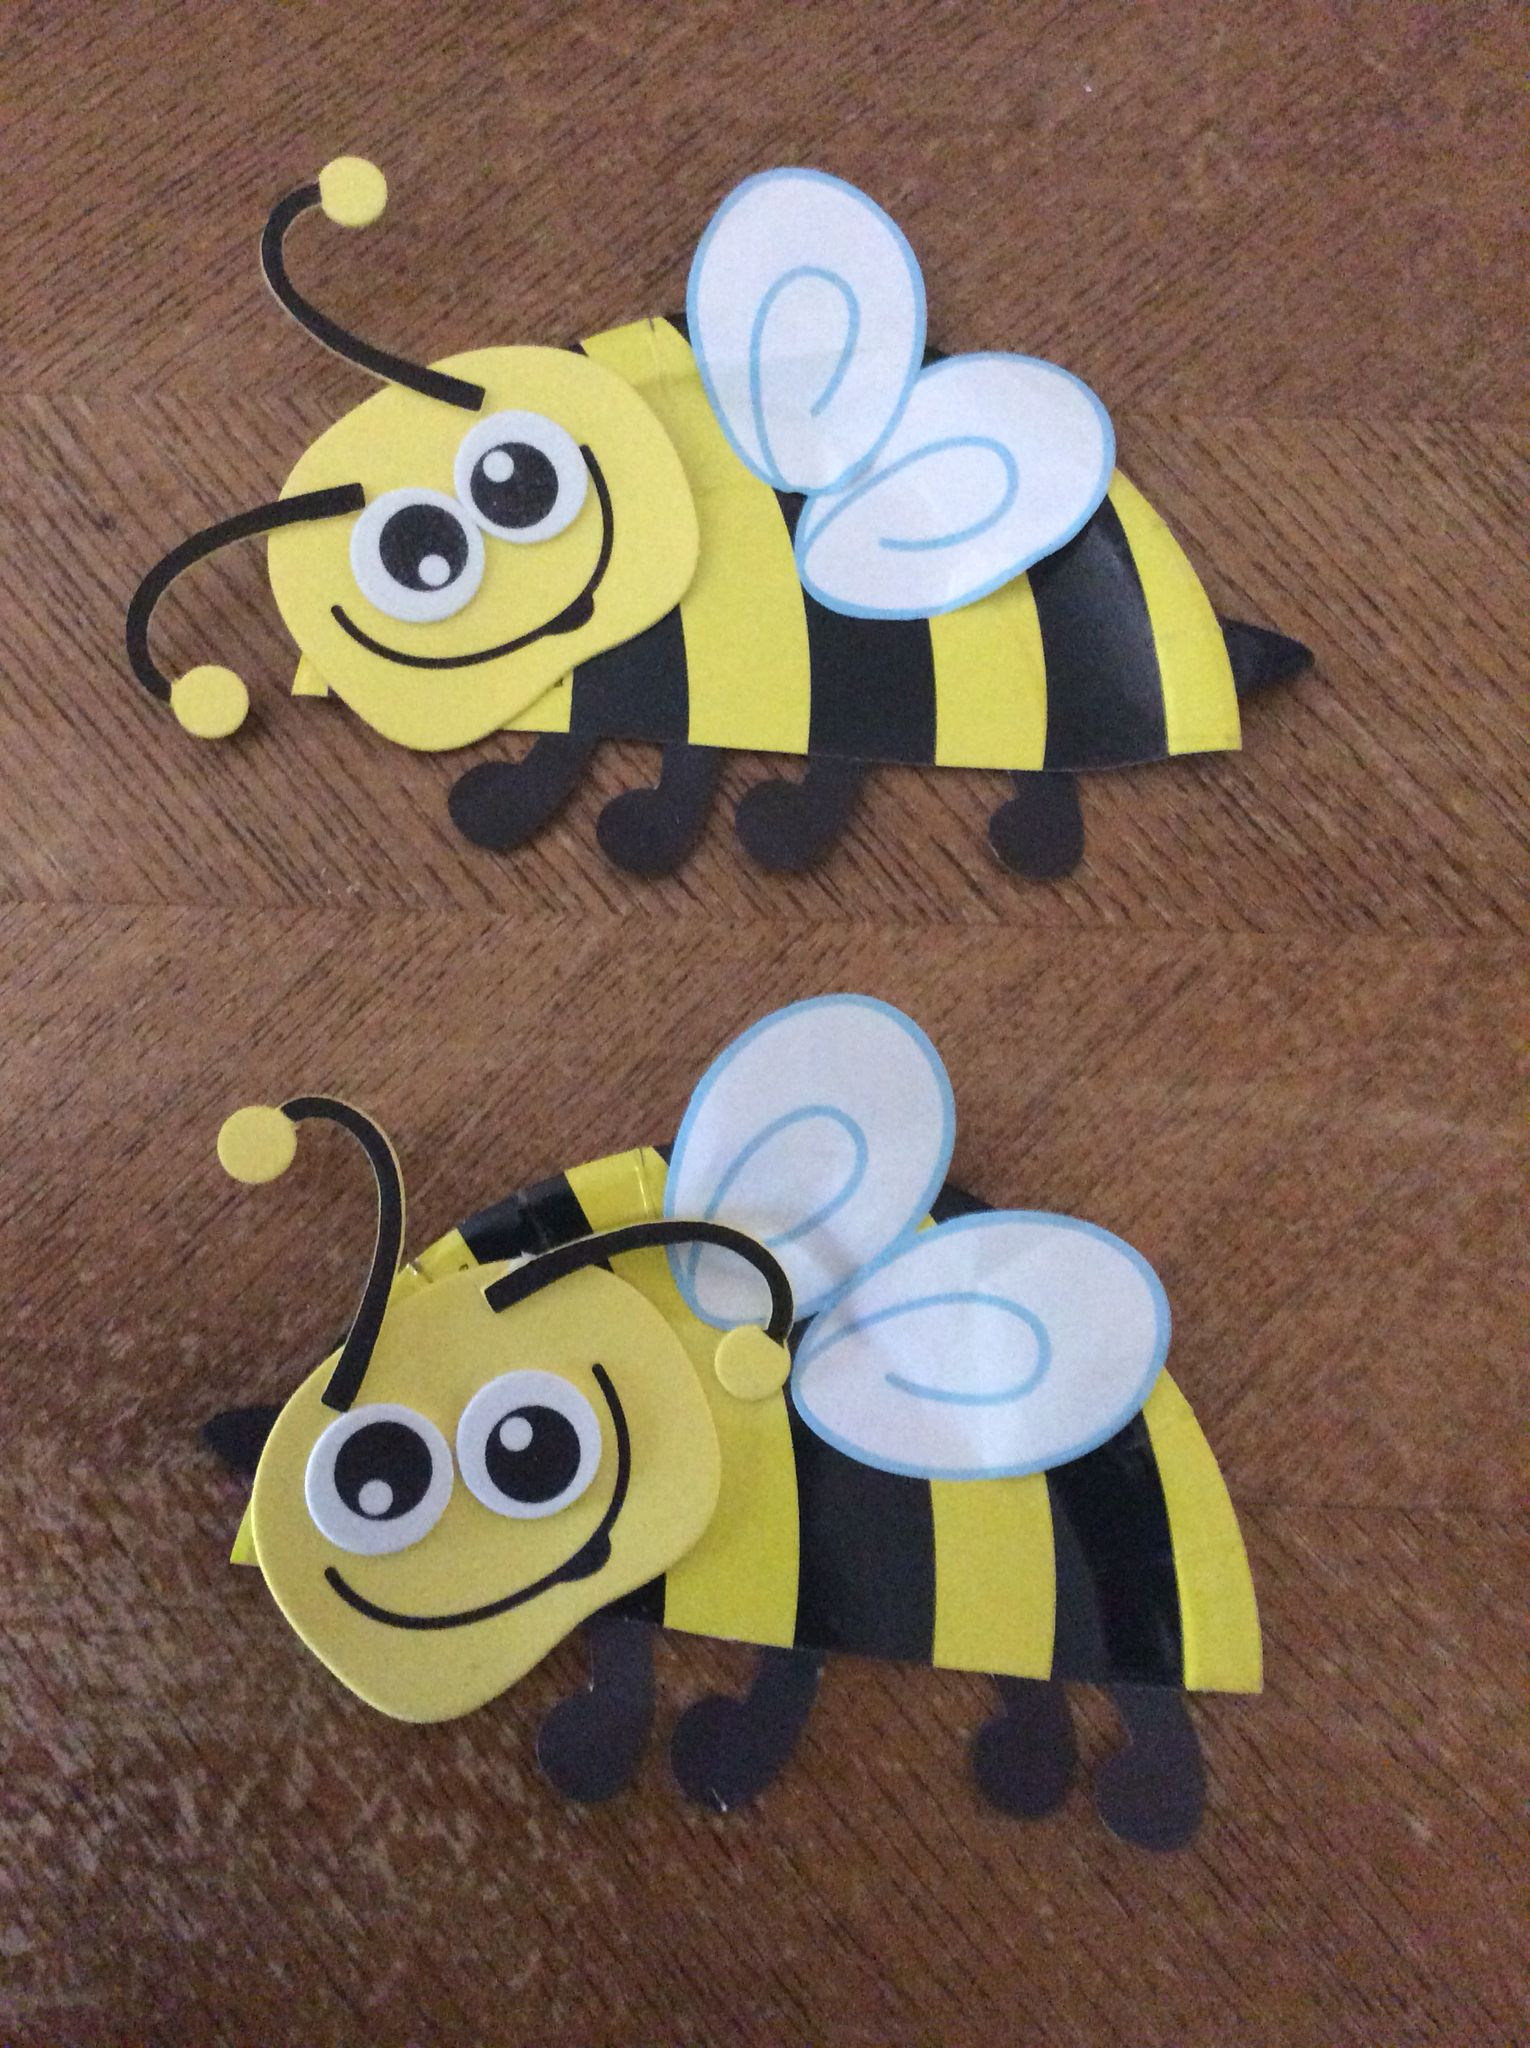 Paper Plate Bumble Bee Bumble Bee Craft Bee Crafts Paper Plate